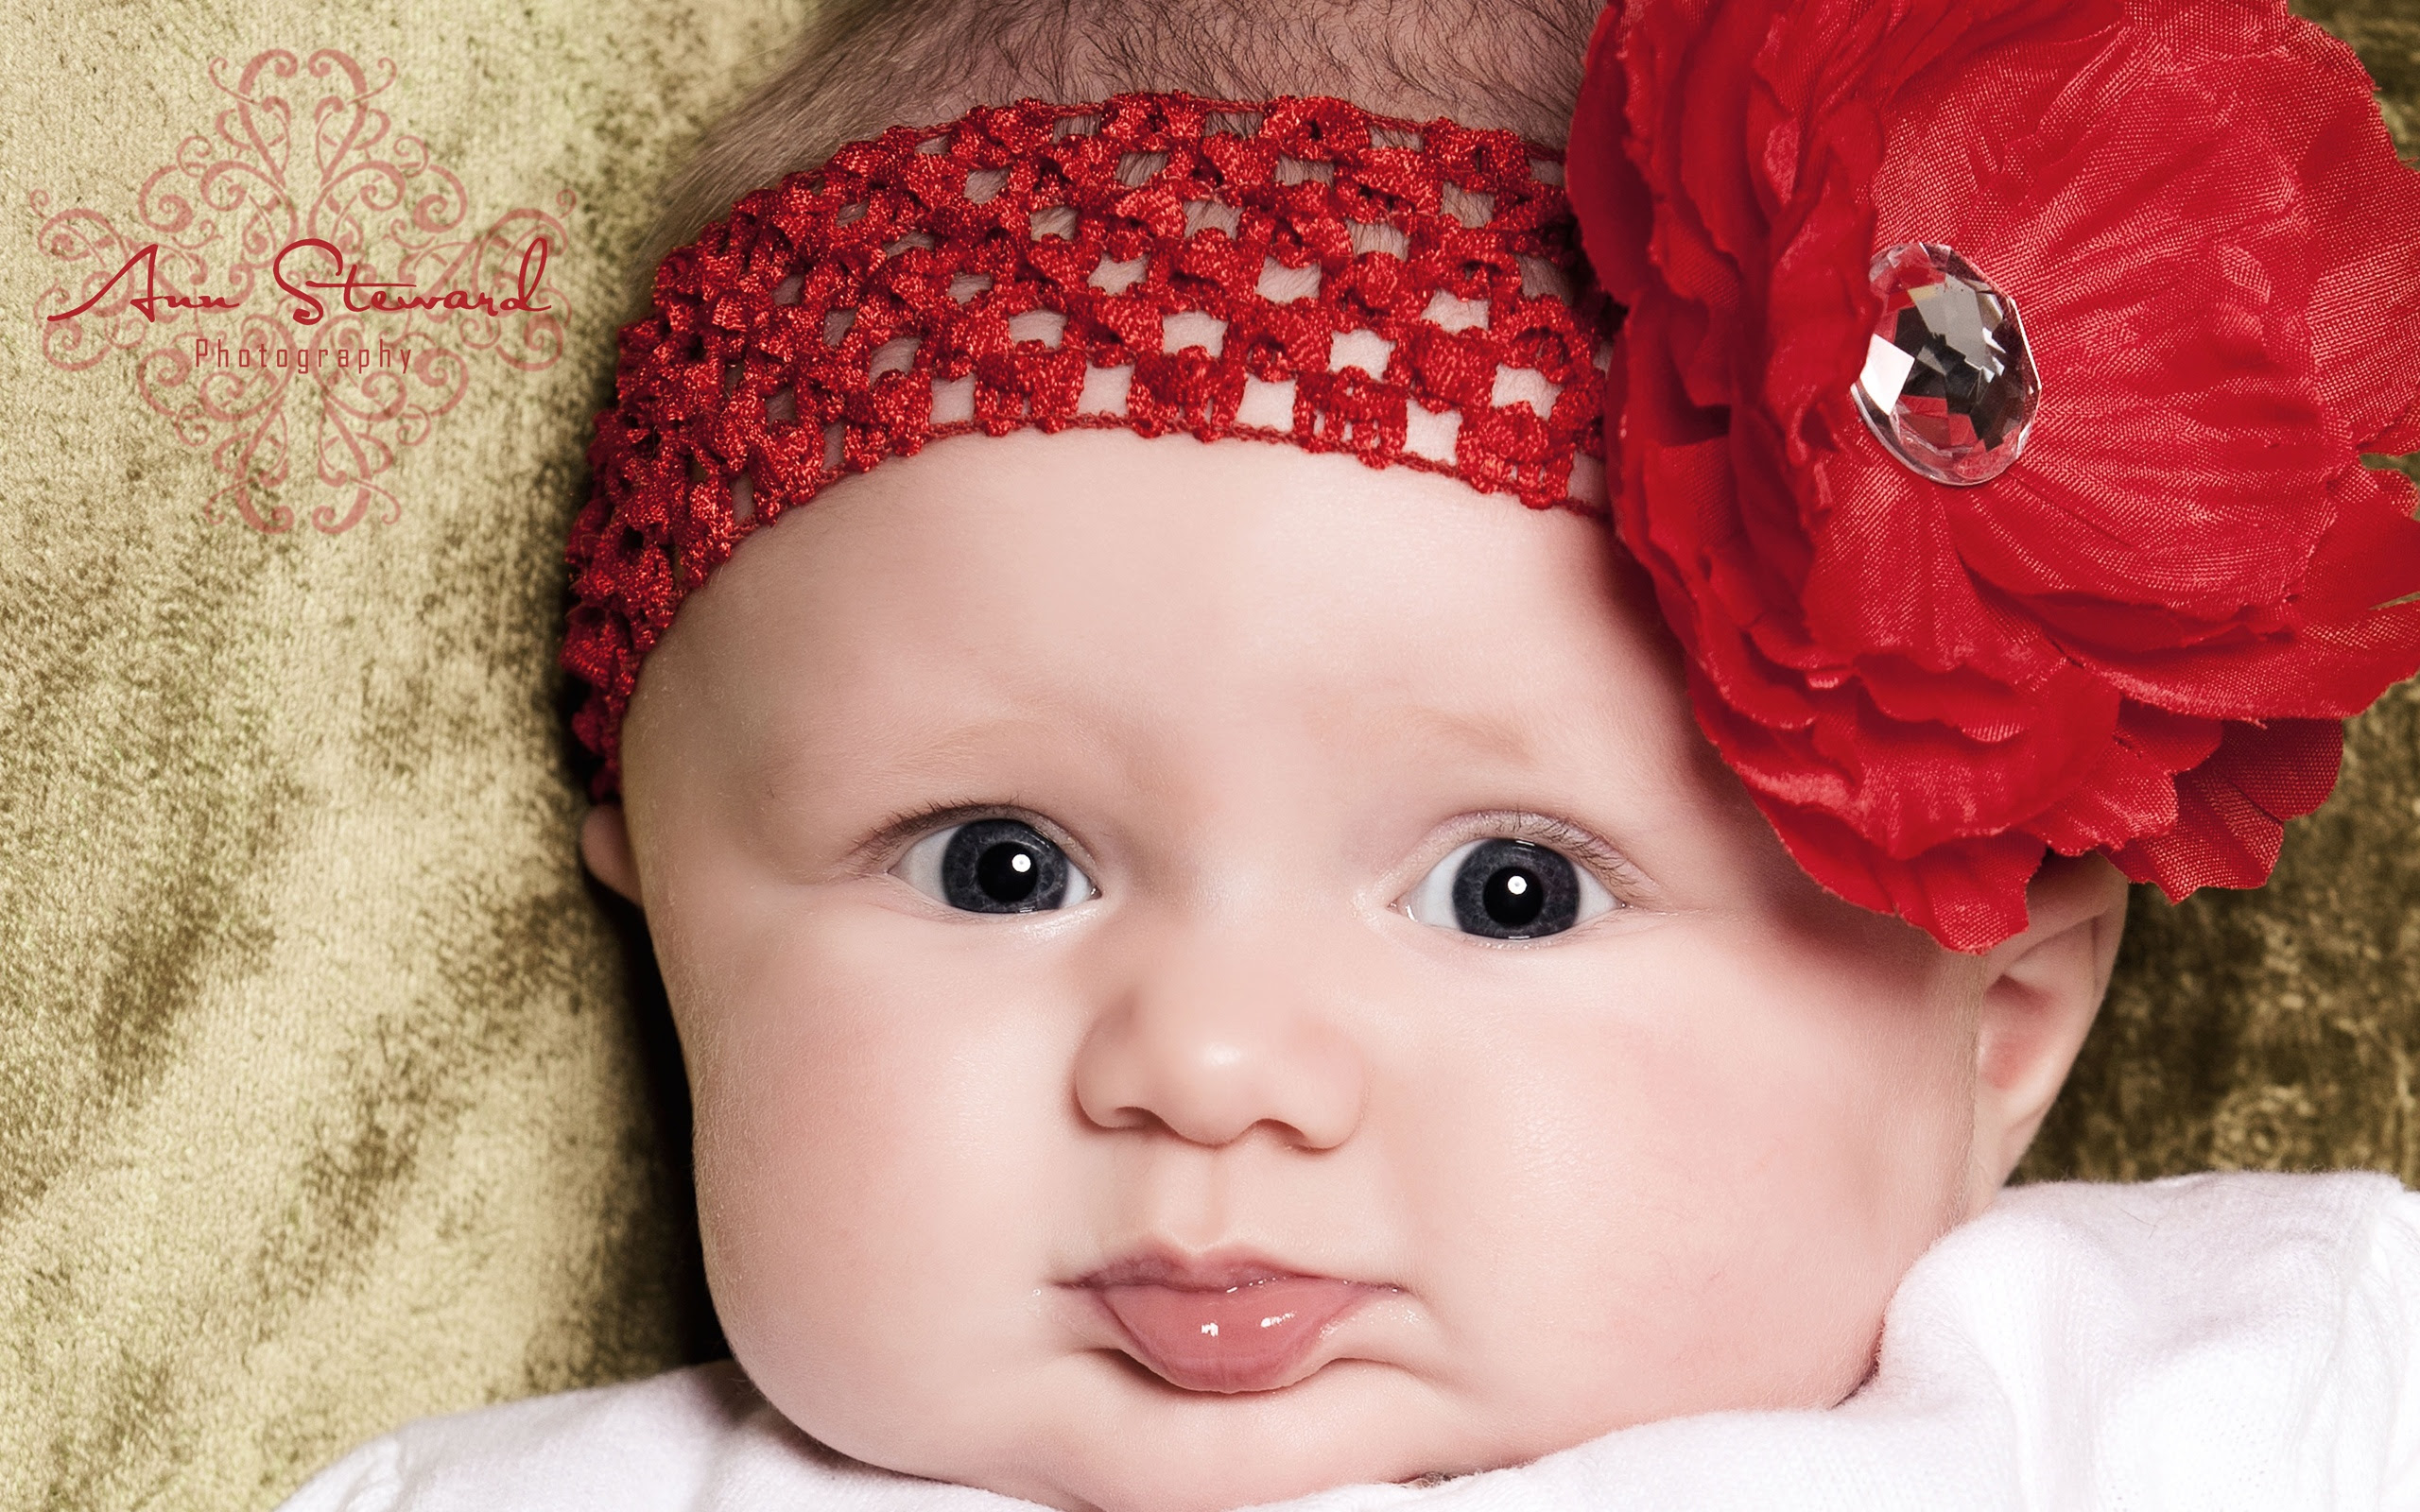 Super Cute Little Baby Wallpapers In Jpg Format For Free Download